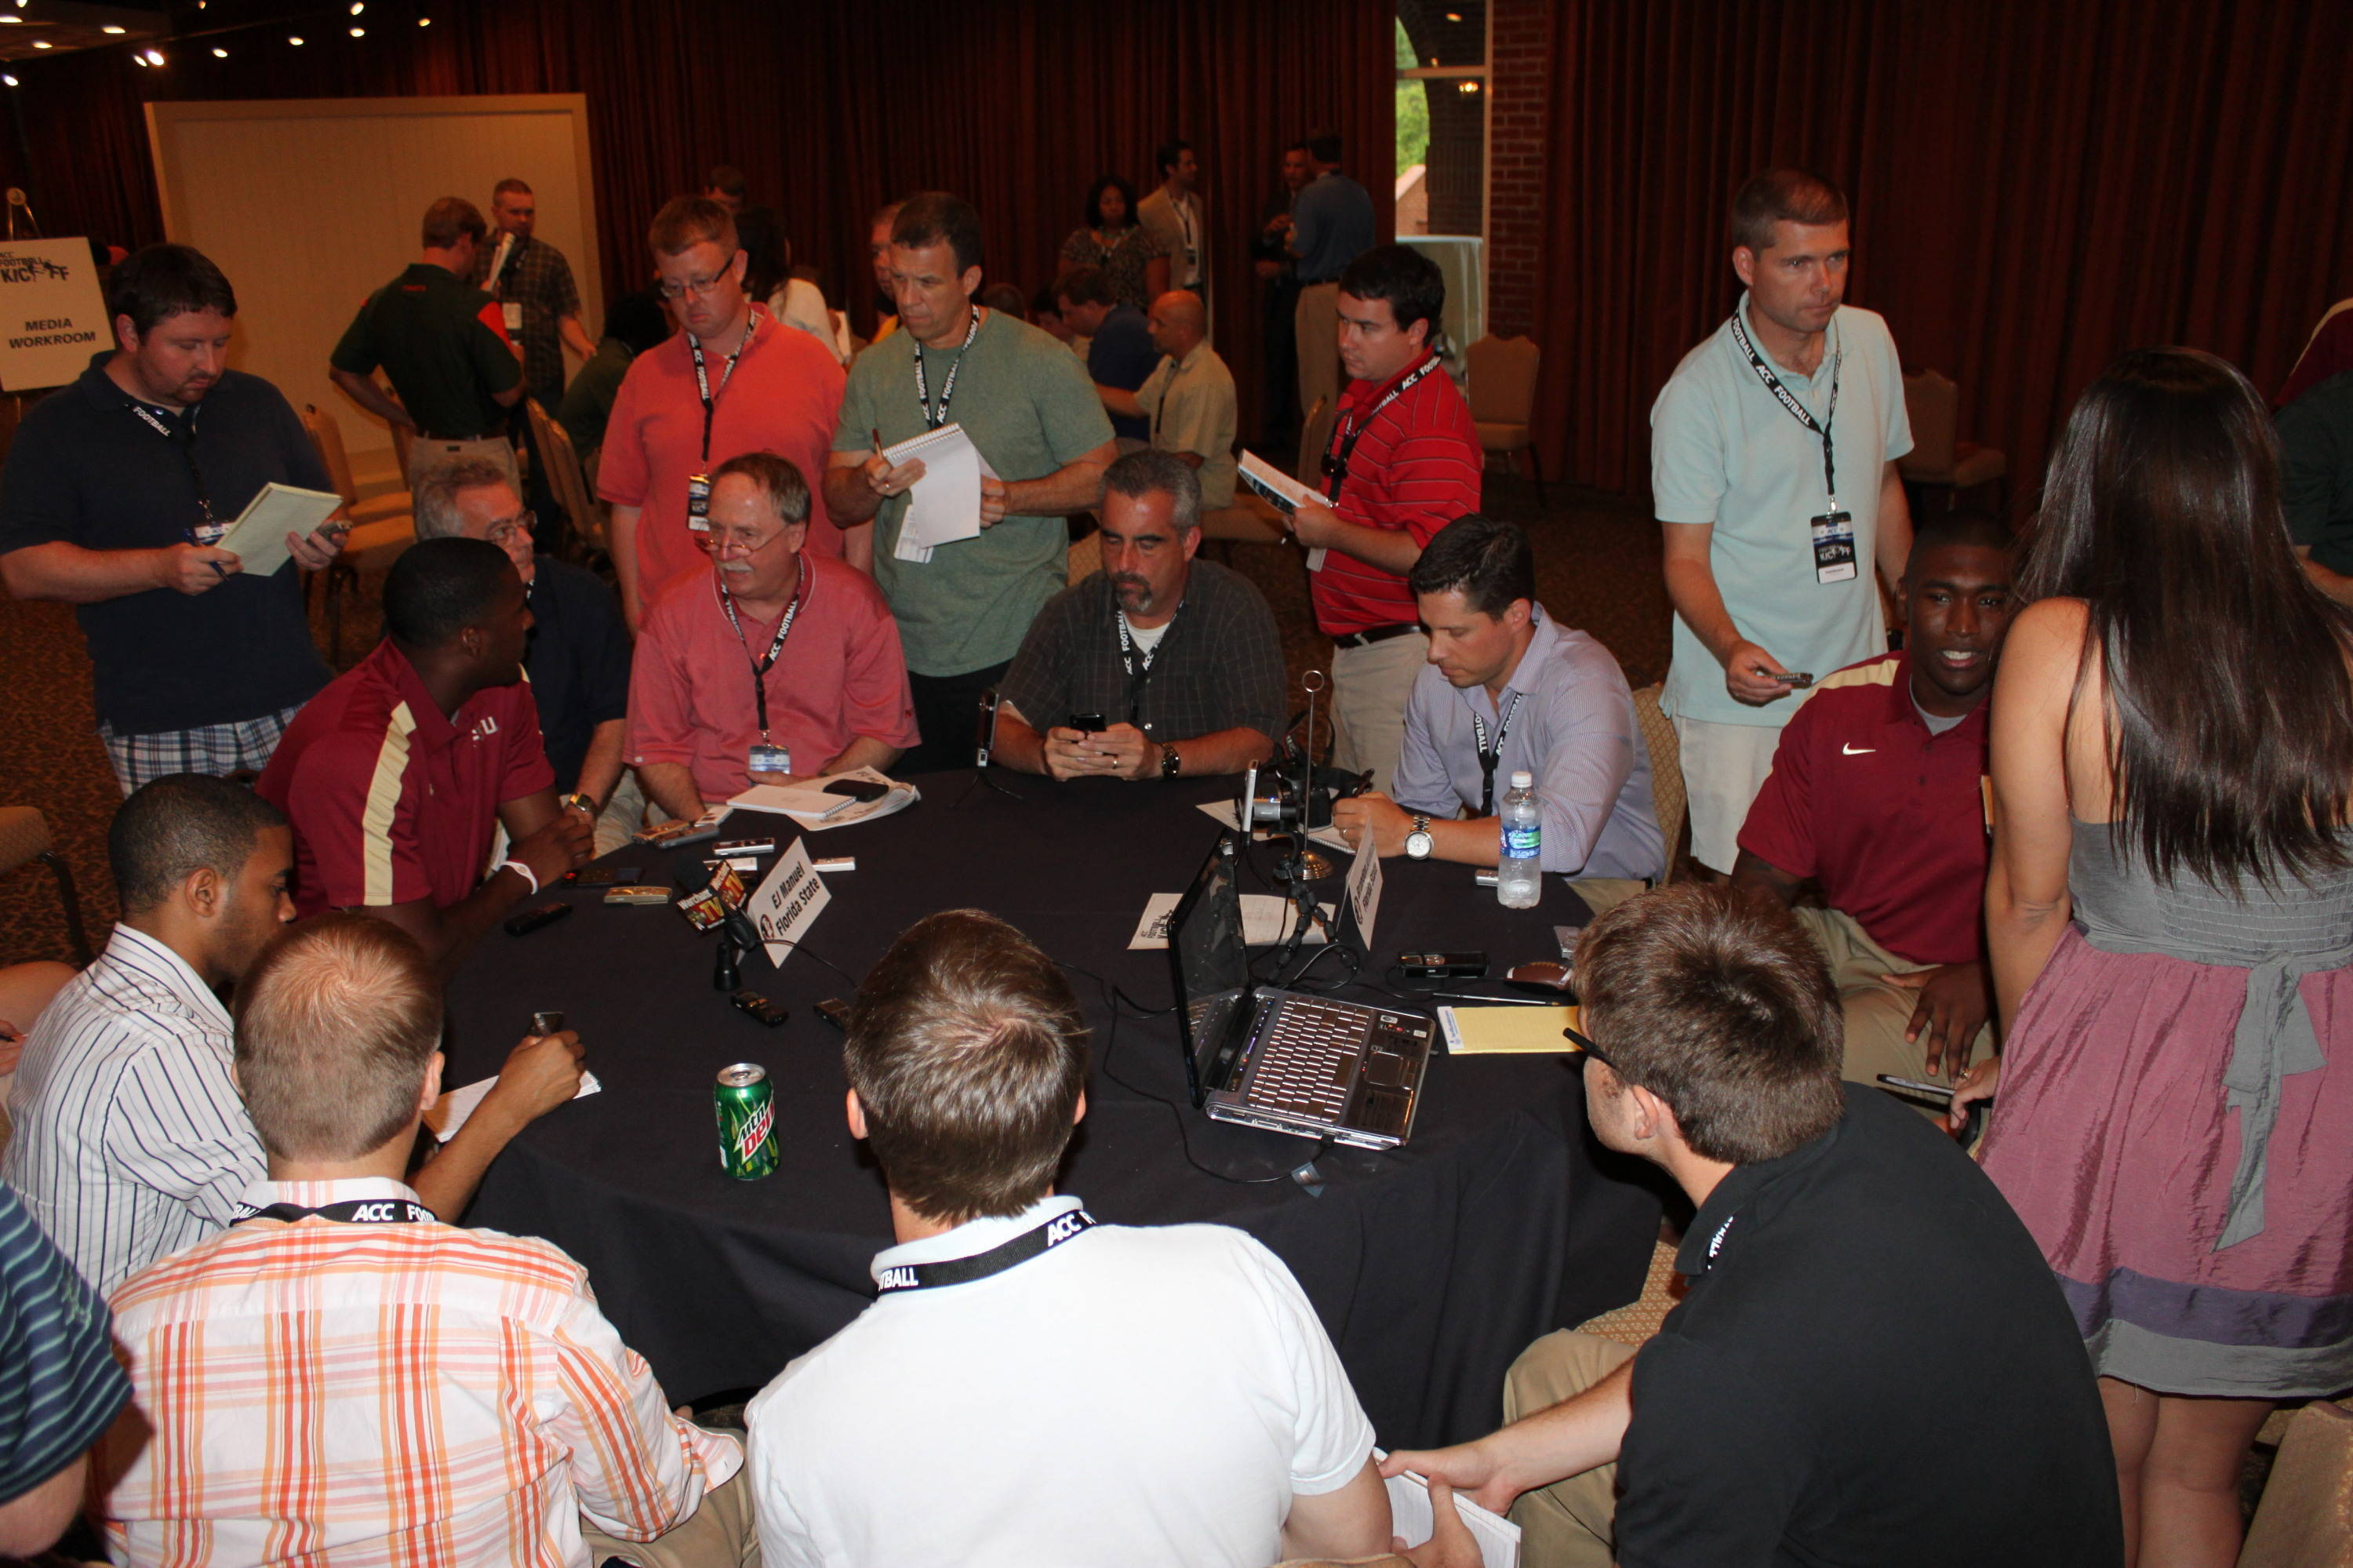 From above, you can see the 2011 Seminoles were one of the hottest topics at the 2011 ACC Kickoff.